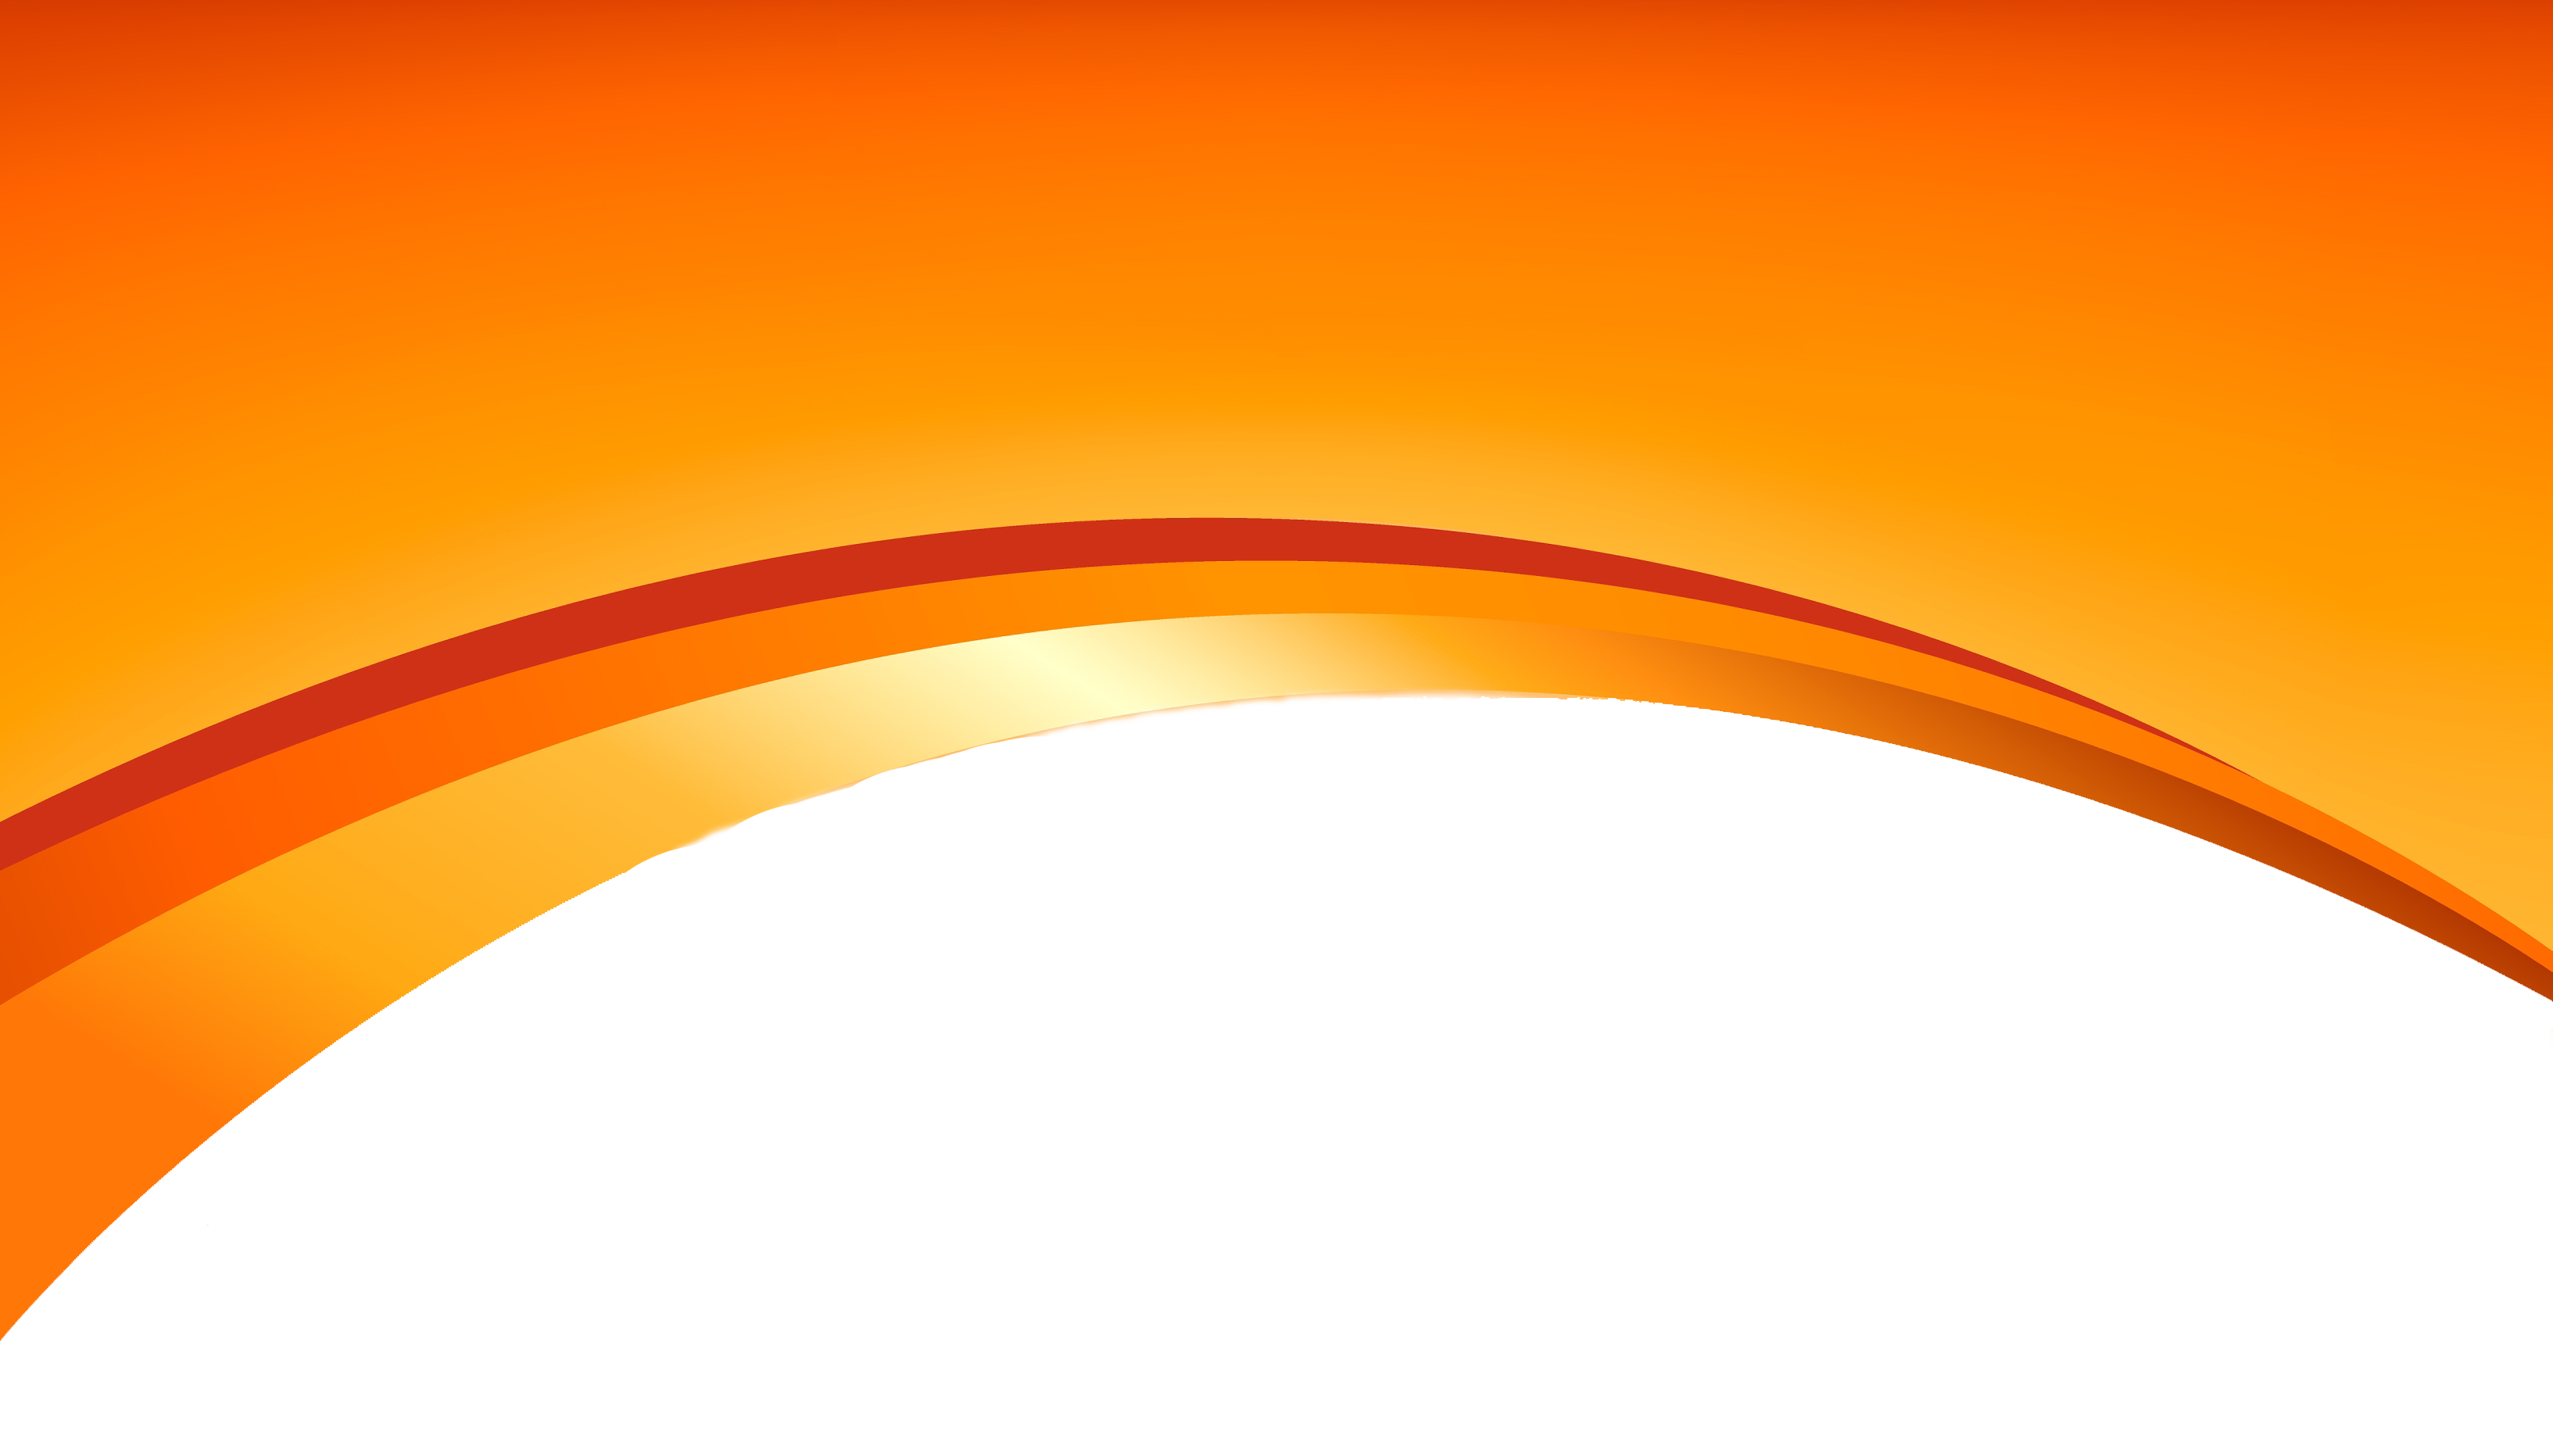 Orange abstract lines transparent. Background images png clip